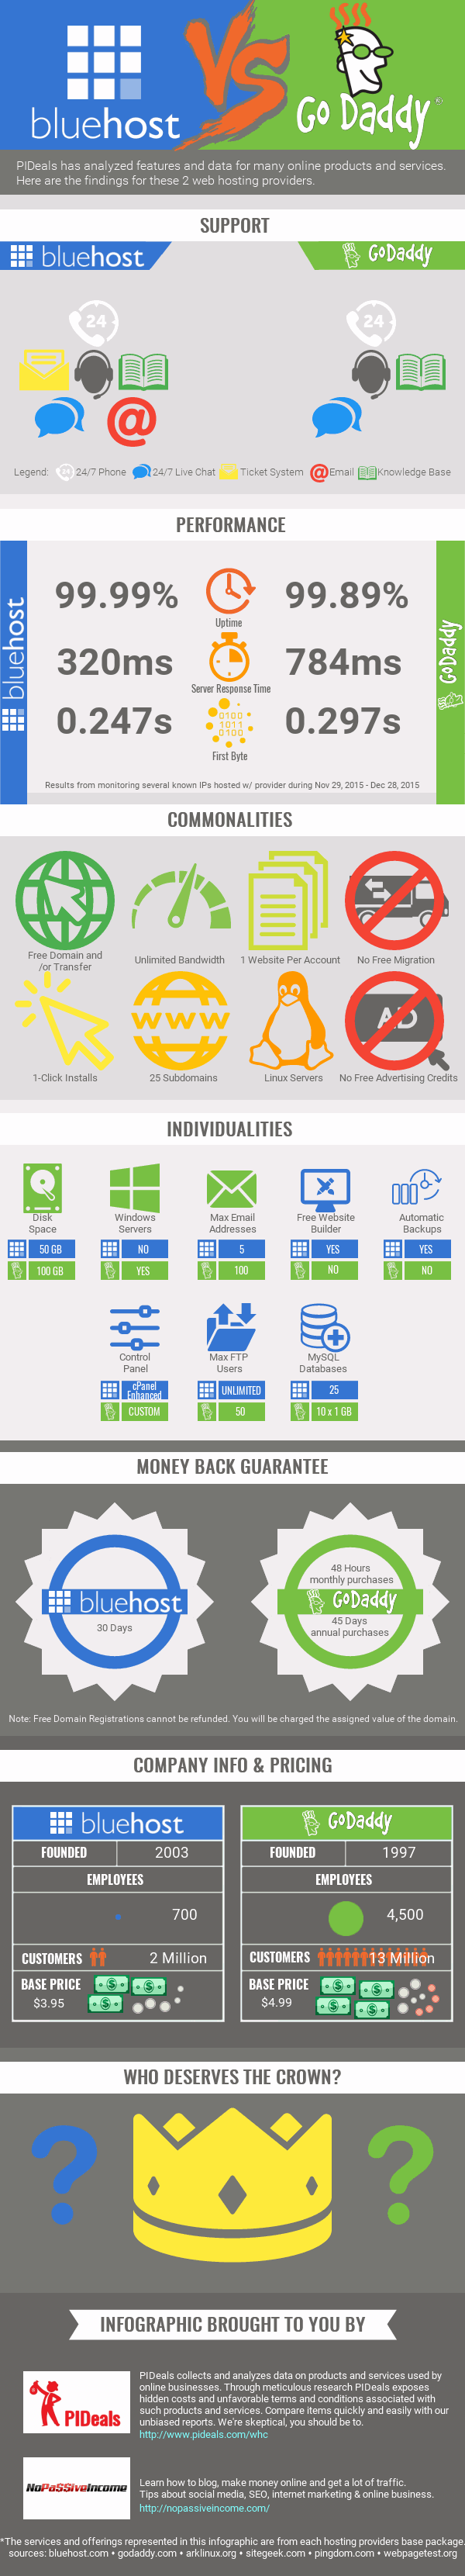 bluehost-vs-godaddy-infographic